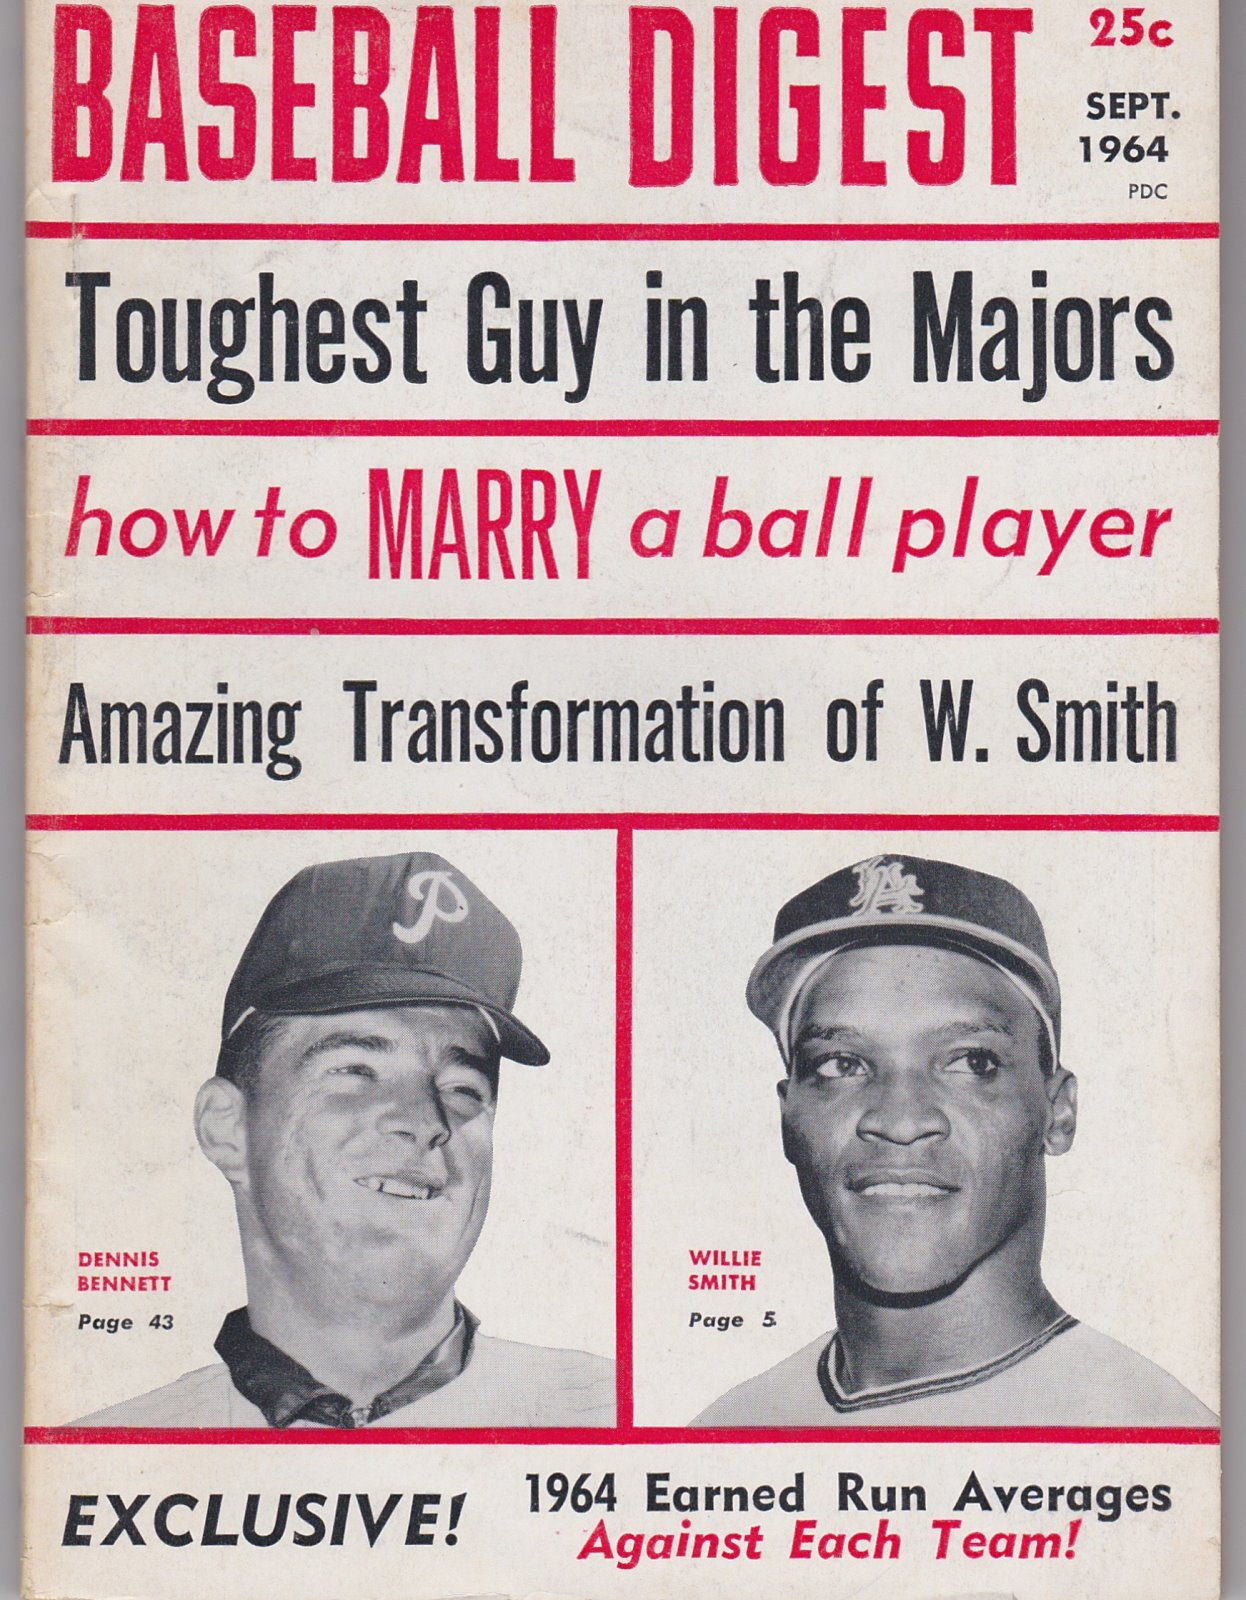 Baseball Digest Baseball's Monthly Magazine Sept, 1964